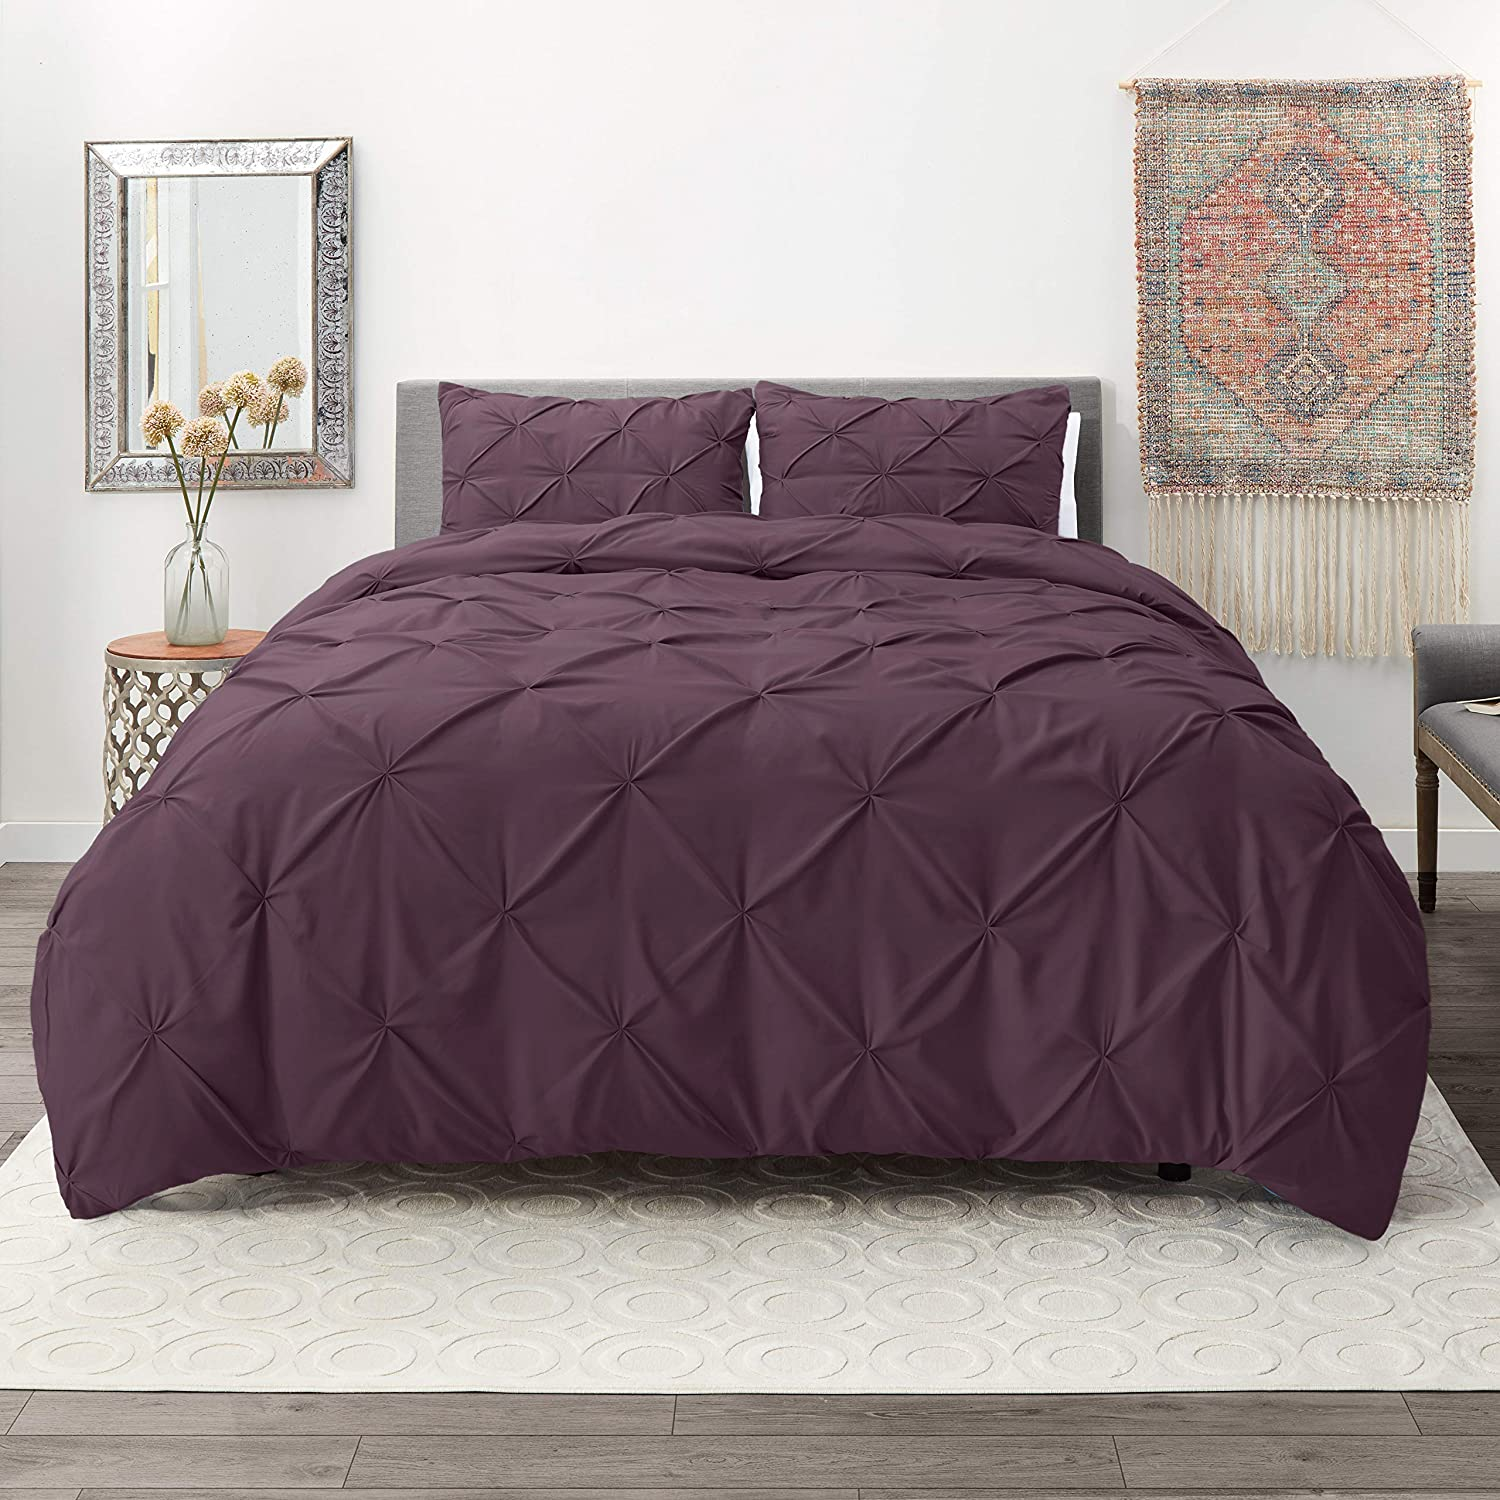 Hotel Signature Comfy Dot Bedding 3 Piece Pinch Pleat Duvet Cover Set Organic Cotton Duvet Cover with 2 Pillow Shams - (Full/Queen Pinch Eggplant)